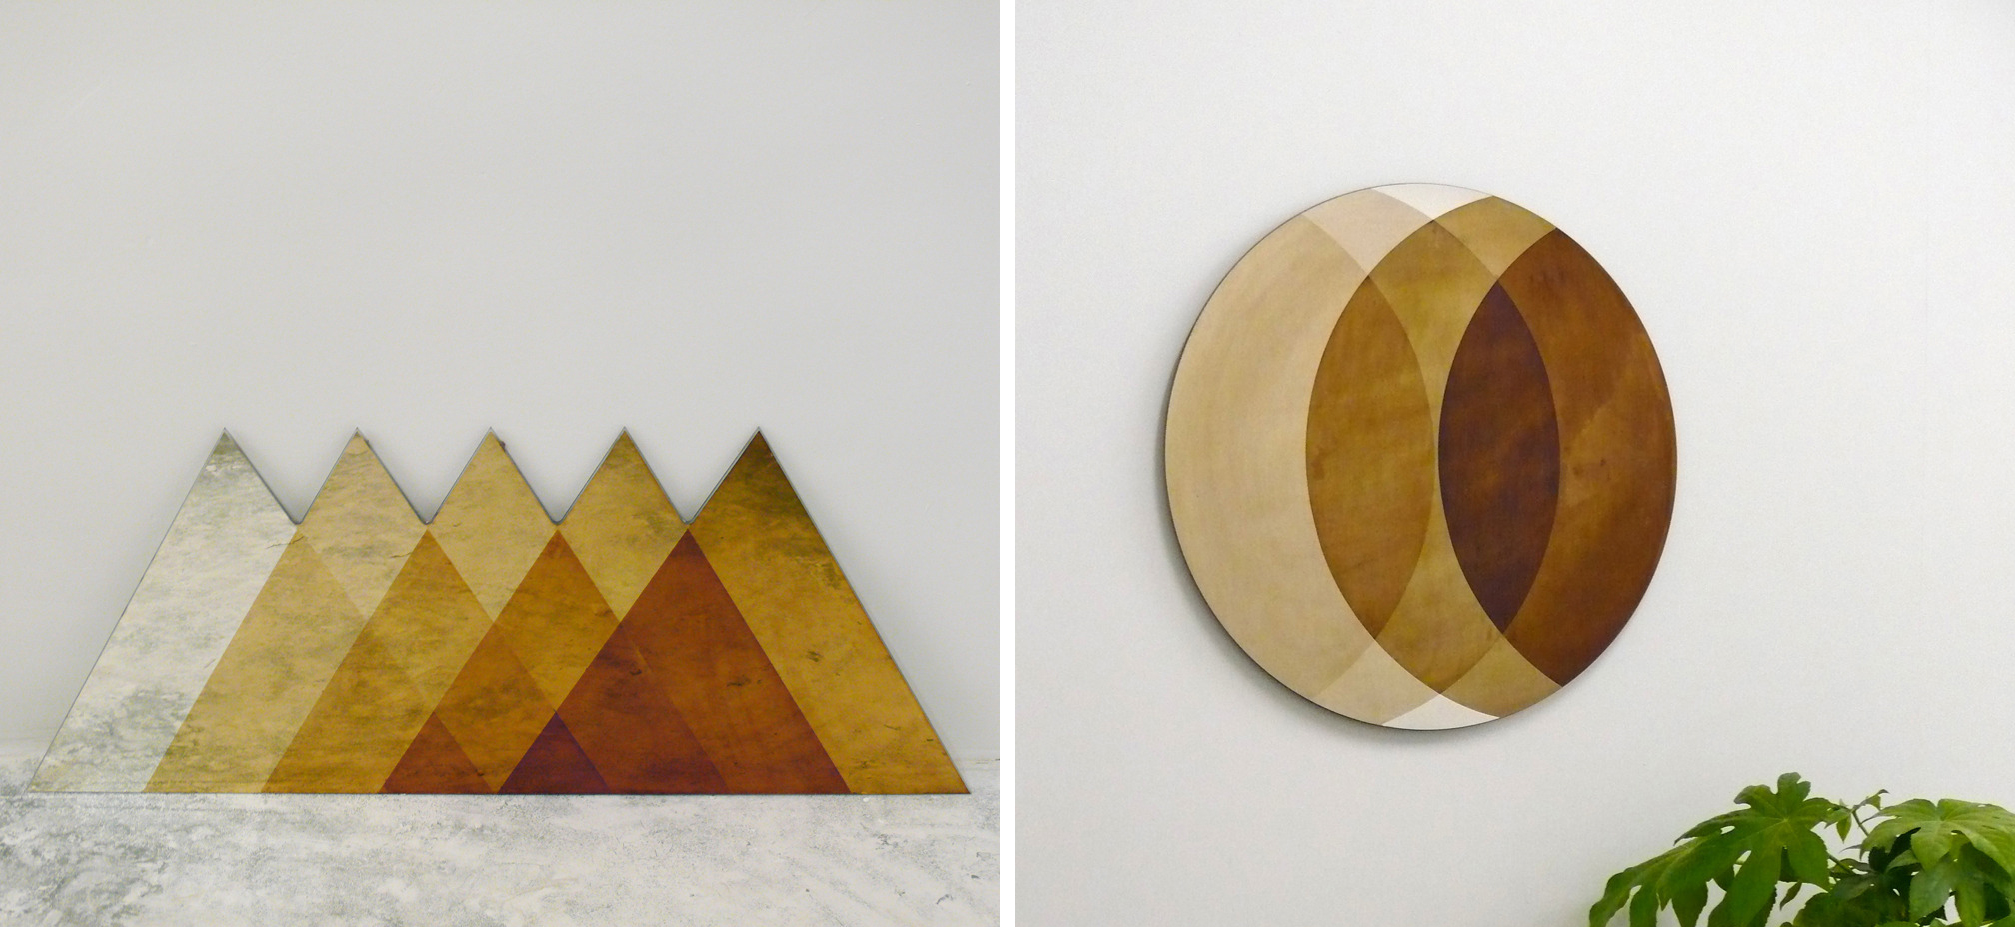 Triangles   and   Small Circle   Transcience Mirror by Lex Pott and David Derksen.